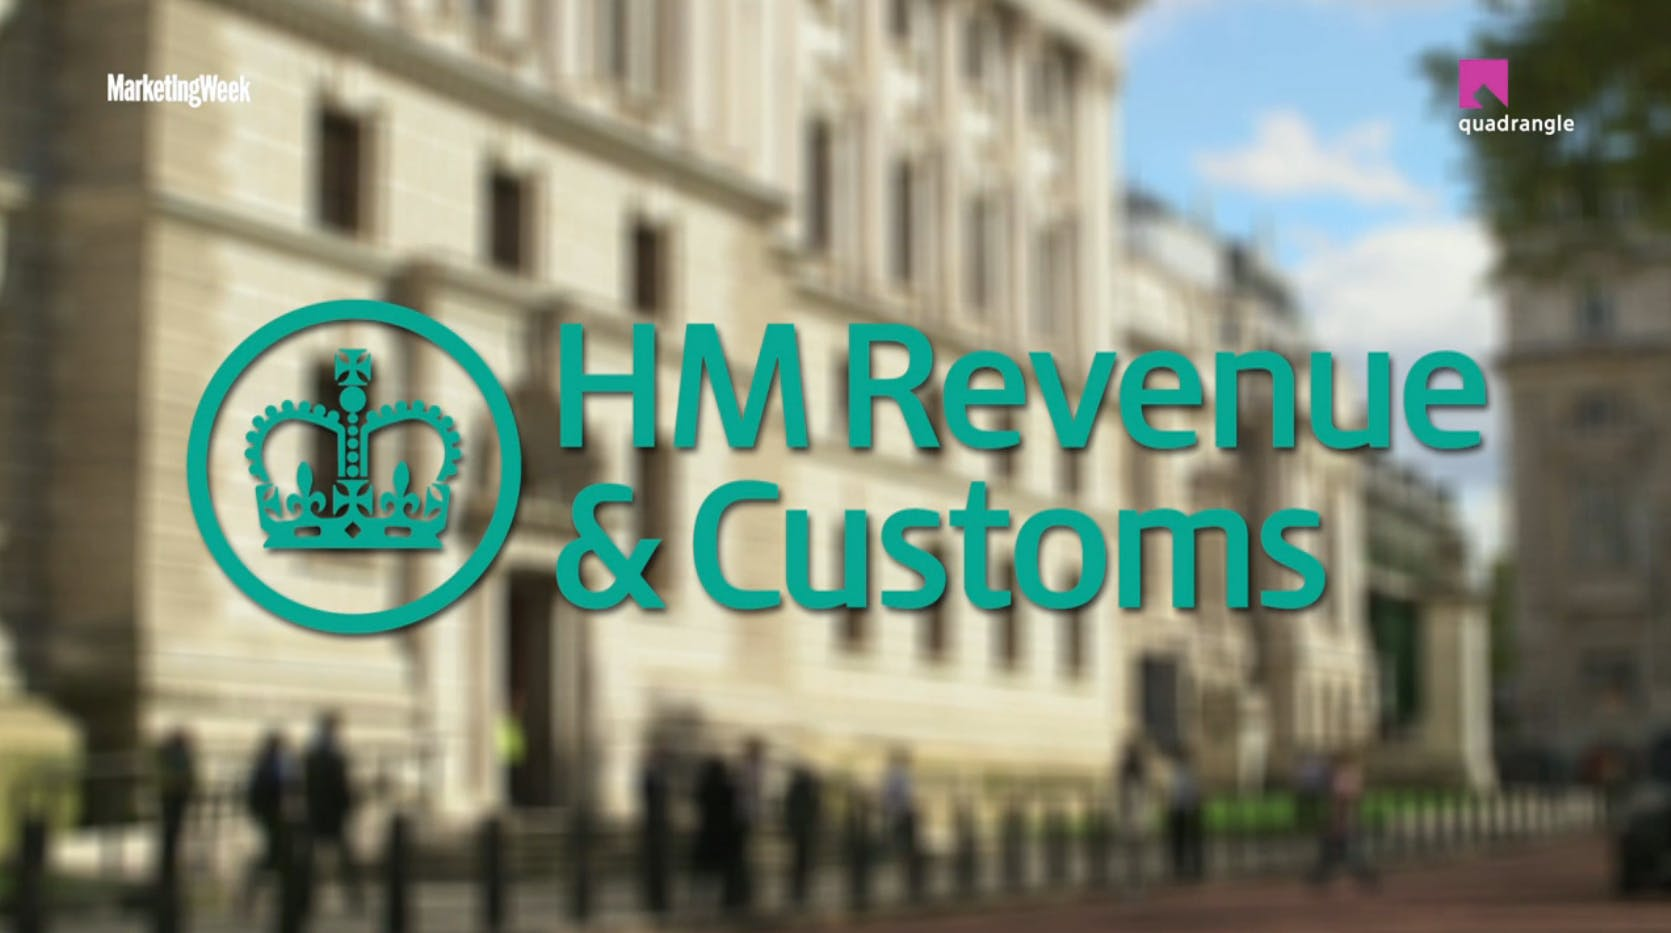 Quadrangle HMRC